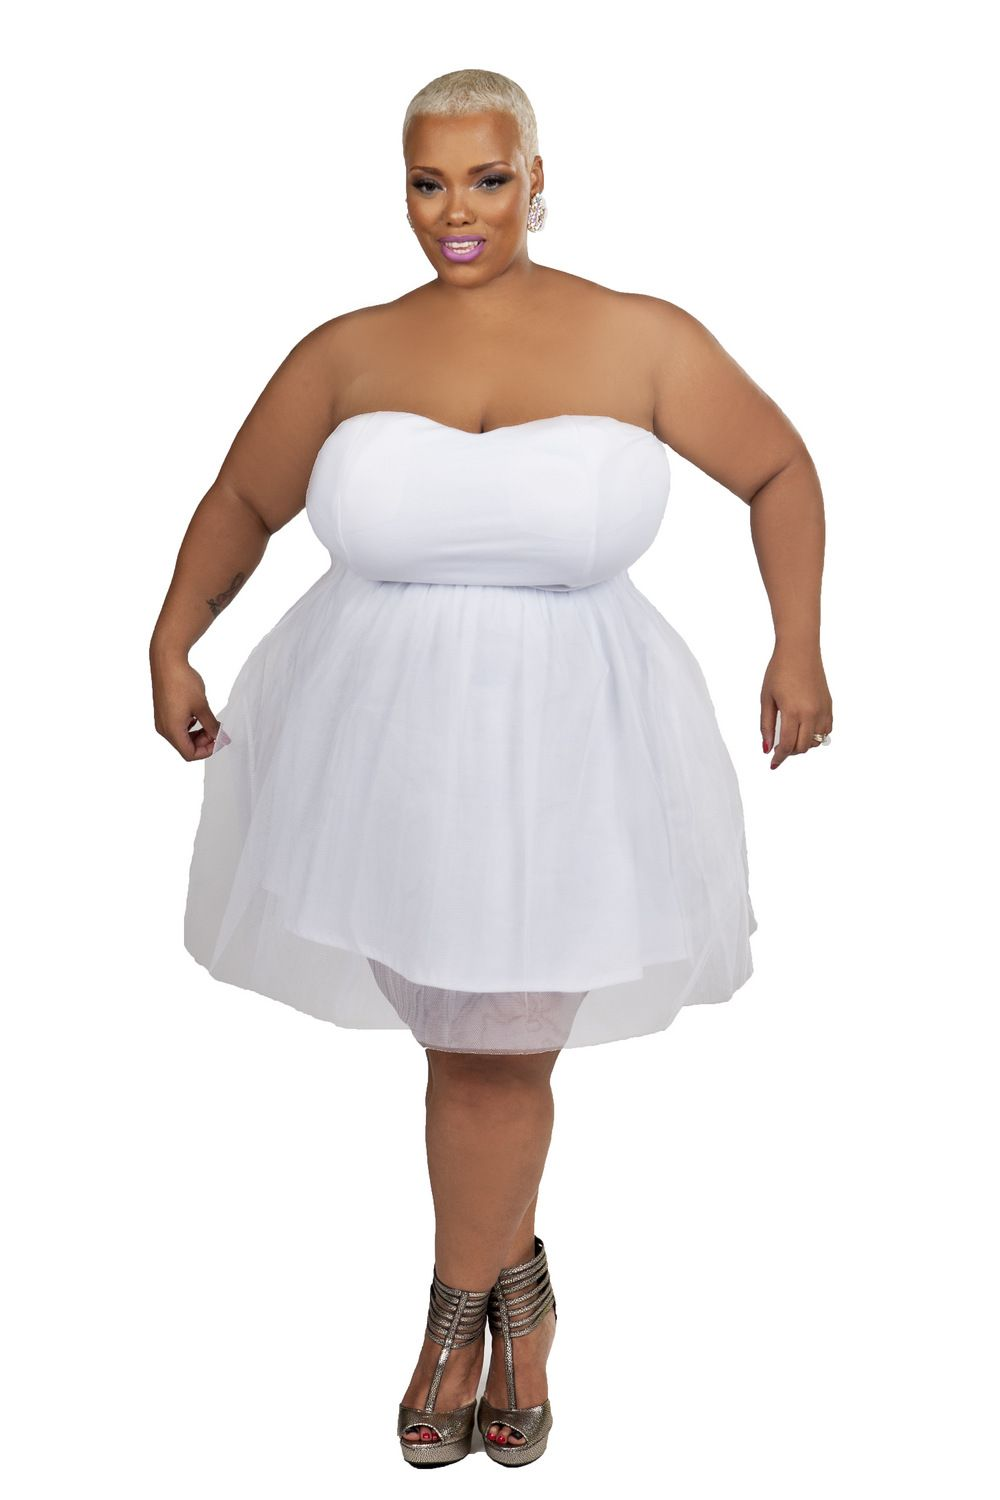 13 Plus Size Little White Dresses for Summer | Curvy, Summer and ...